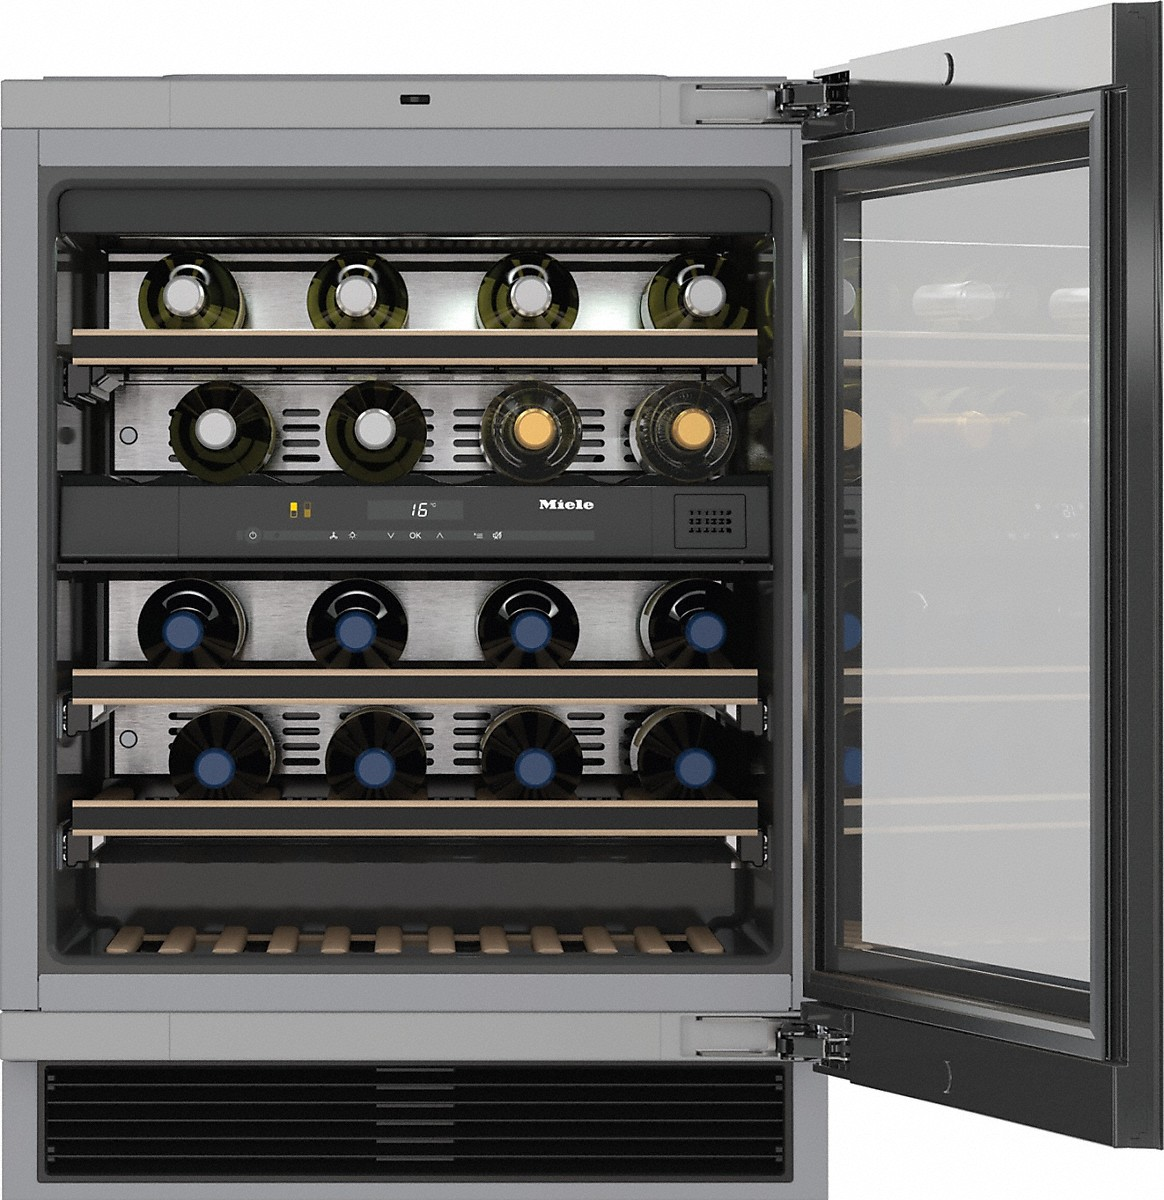 Weinschränke Bosch Miele Kwt 6322 Ug Built Under Wine Conditioning Unit